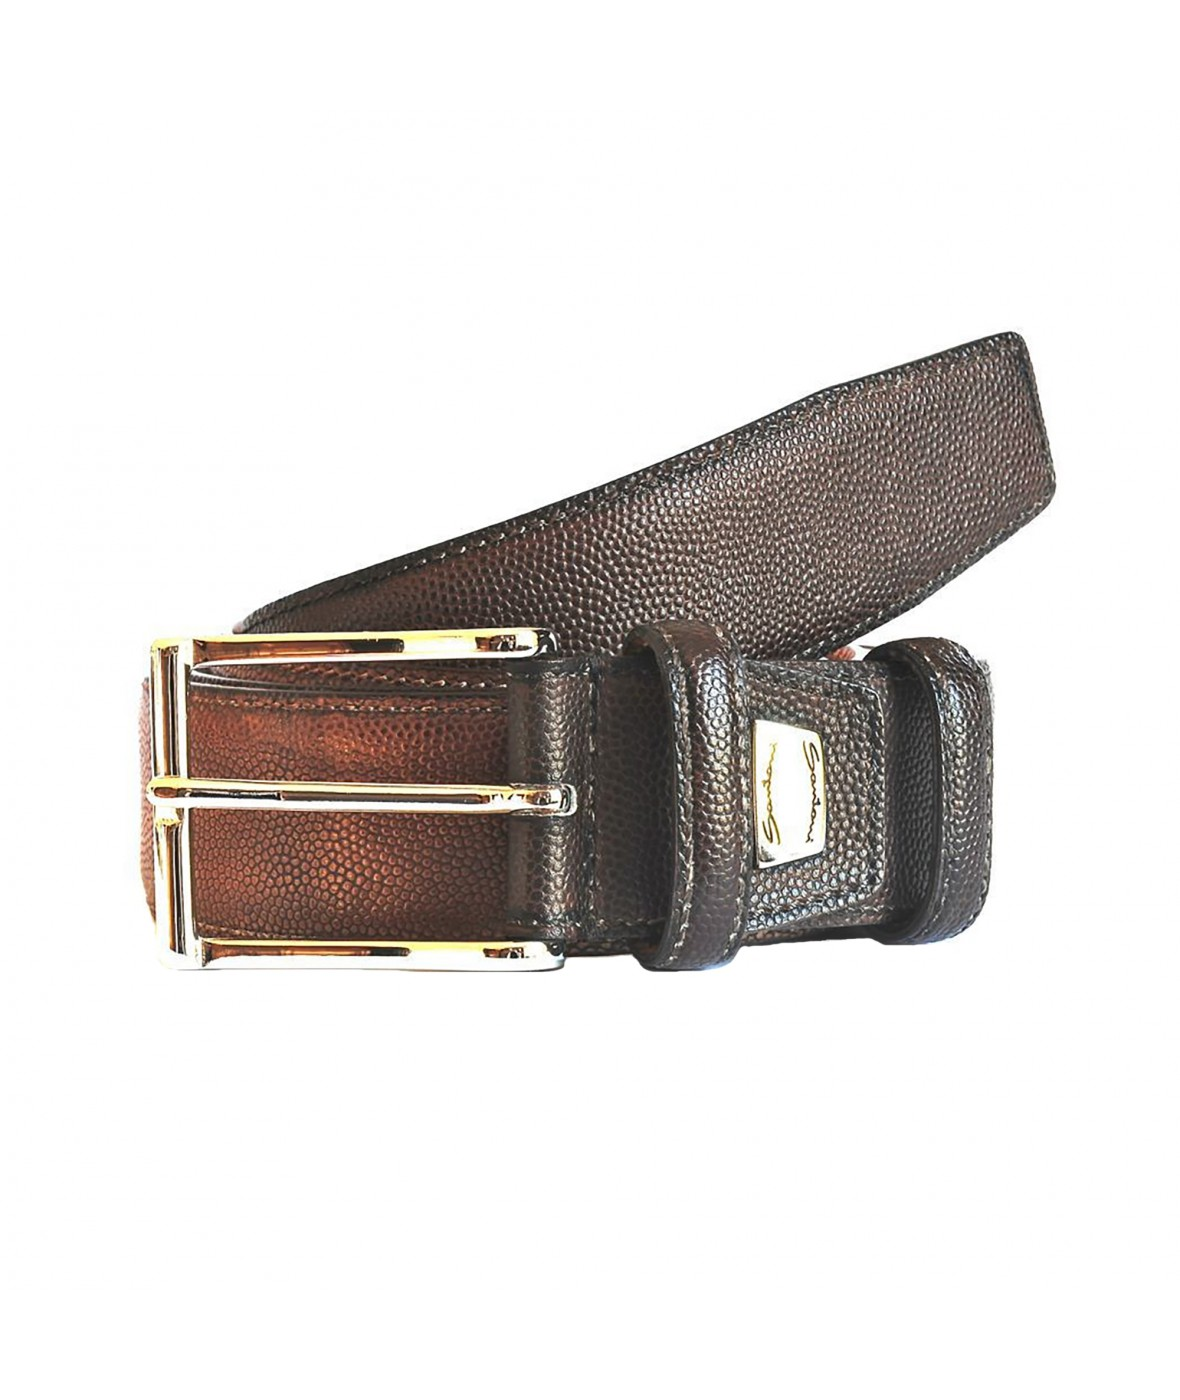 Santoni Belt Leather (384)